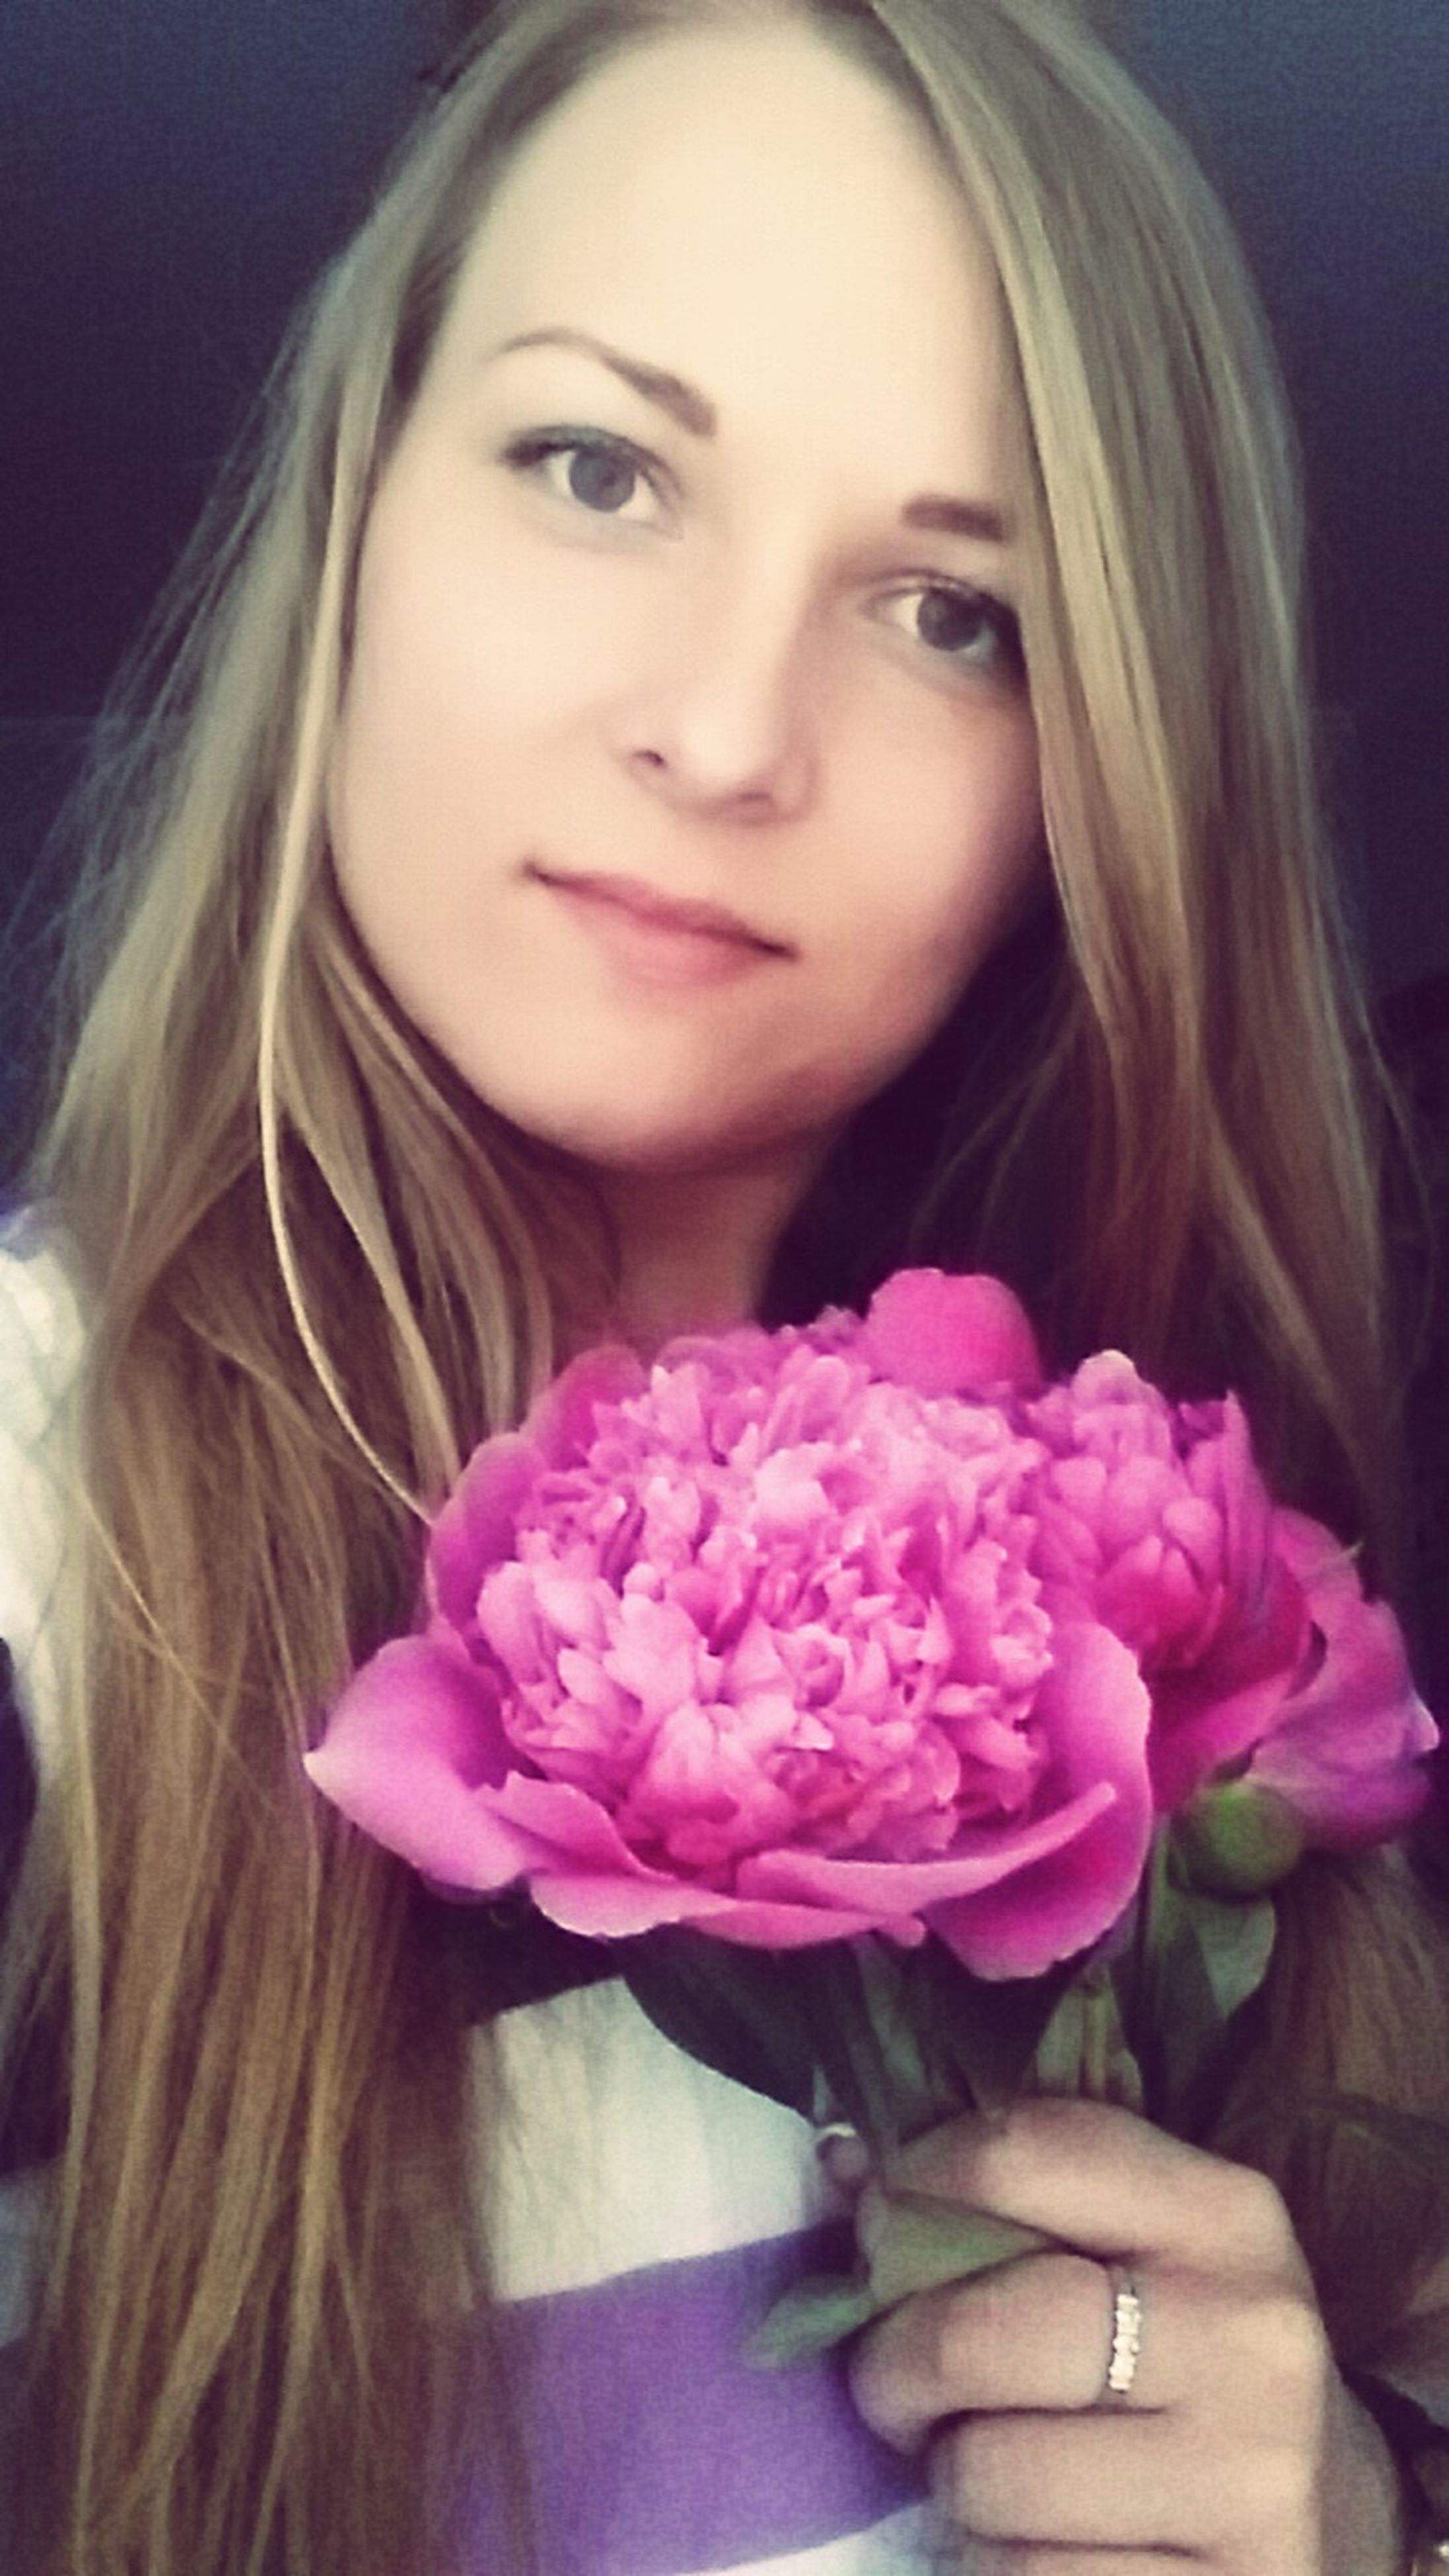 young women, person, long hair, young adult, indoors, lifestyles, portrait, headshot, flower, looking at camera, leisure activity, front view, beauty, close-up, blond hair, smiling, casual clothing